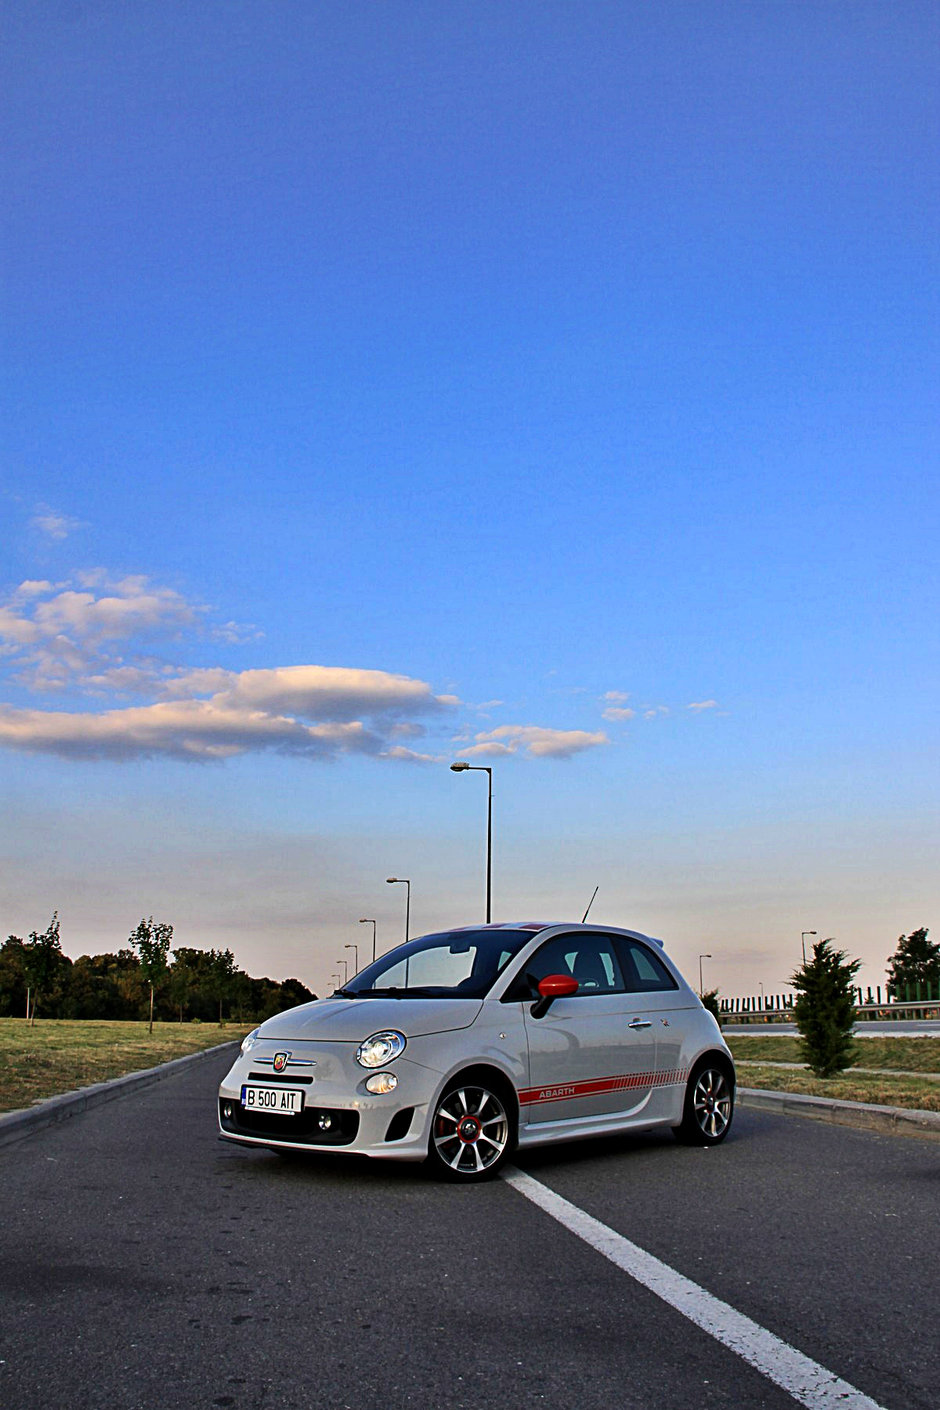 Test Drive 4tuning: Fiat 500 Abarth